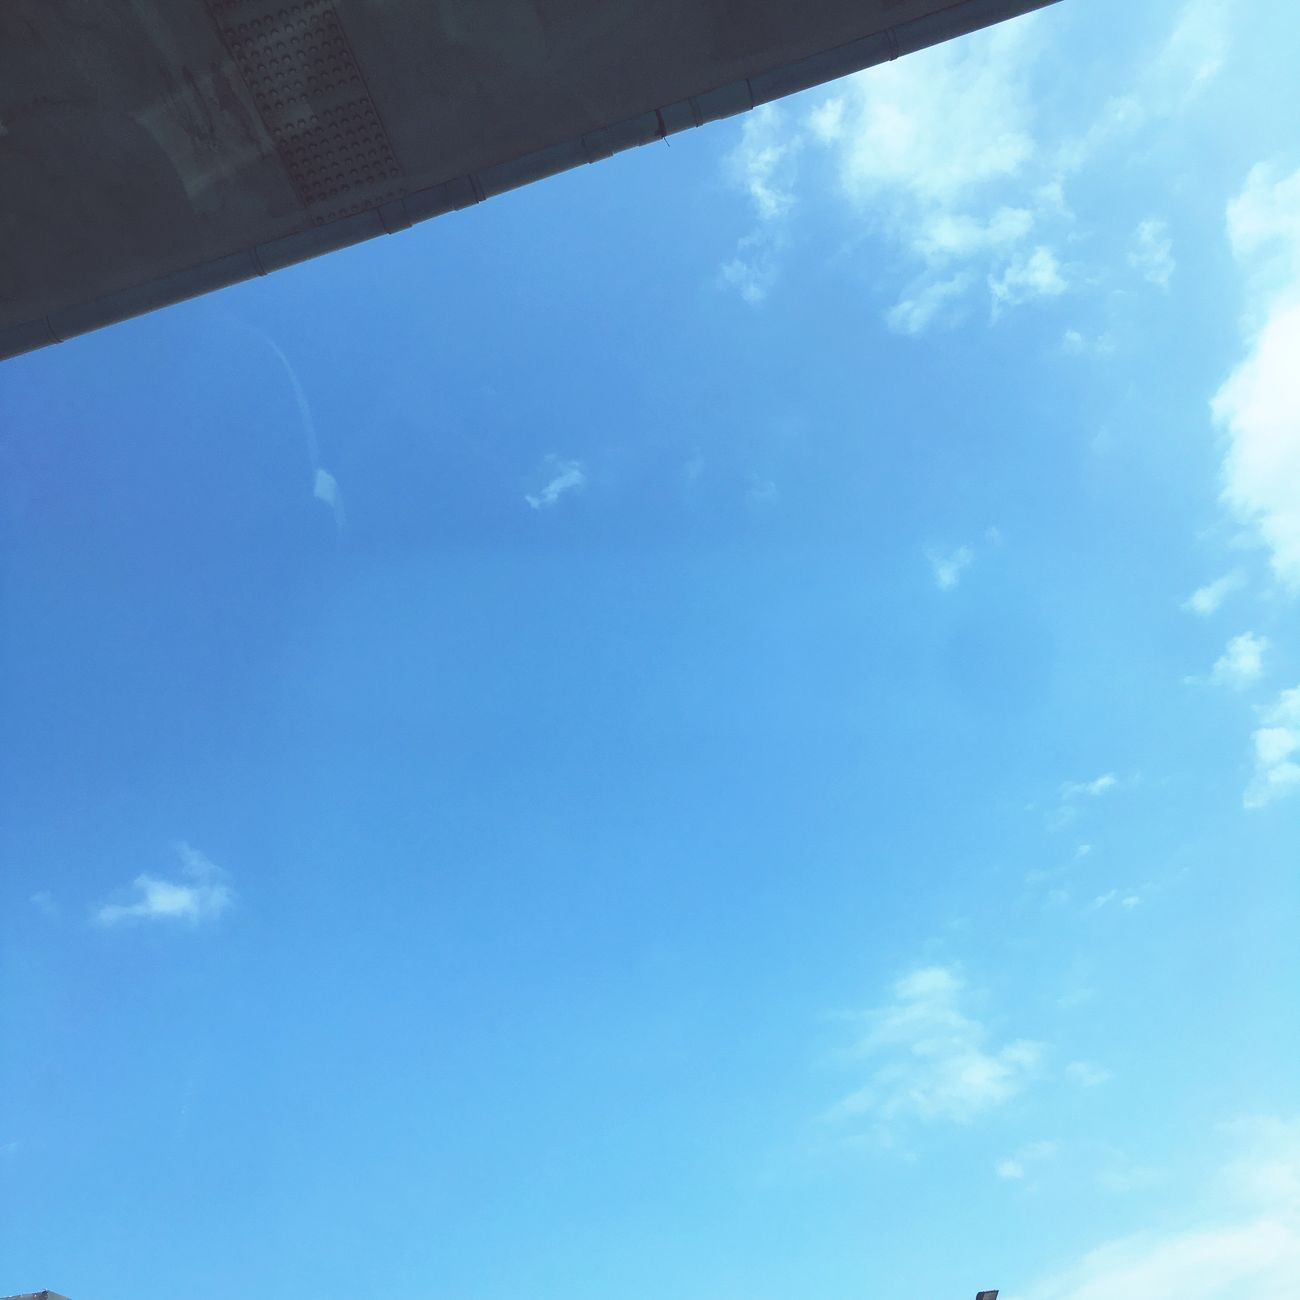 Sky Blue Low Angle View No People Nature Cloud - Sky Day Outdoors In A Car